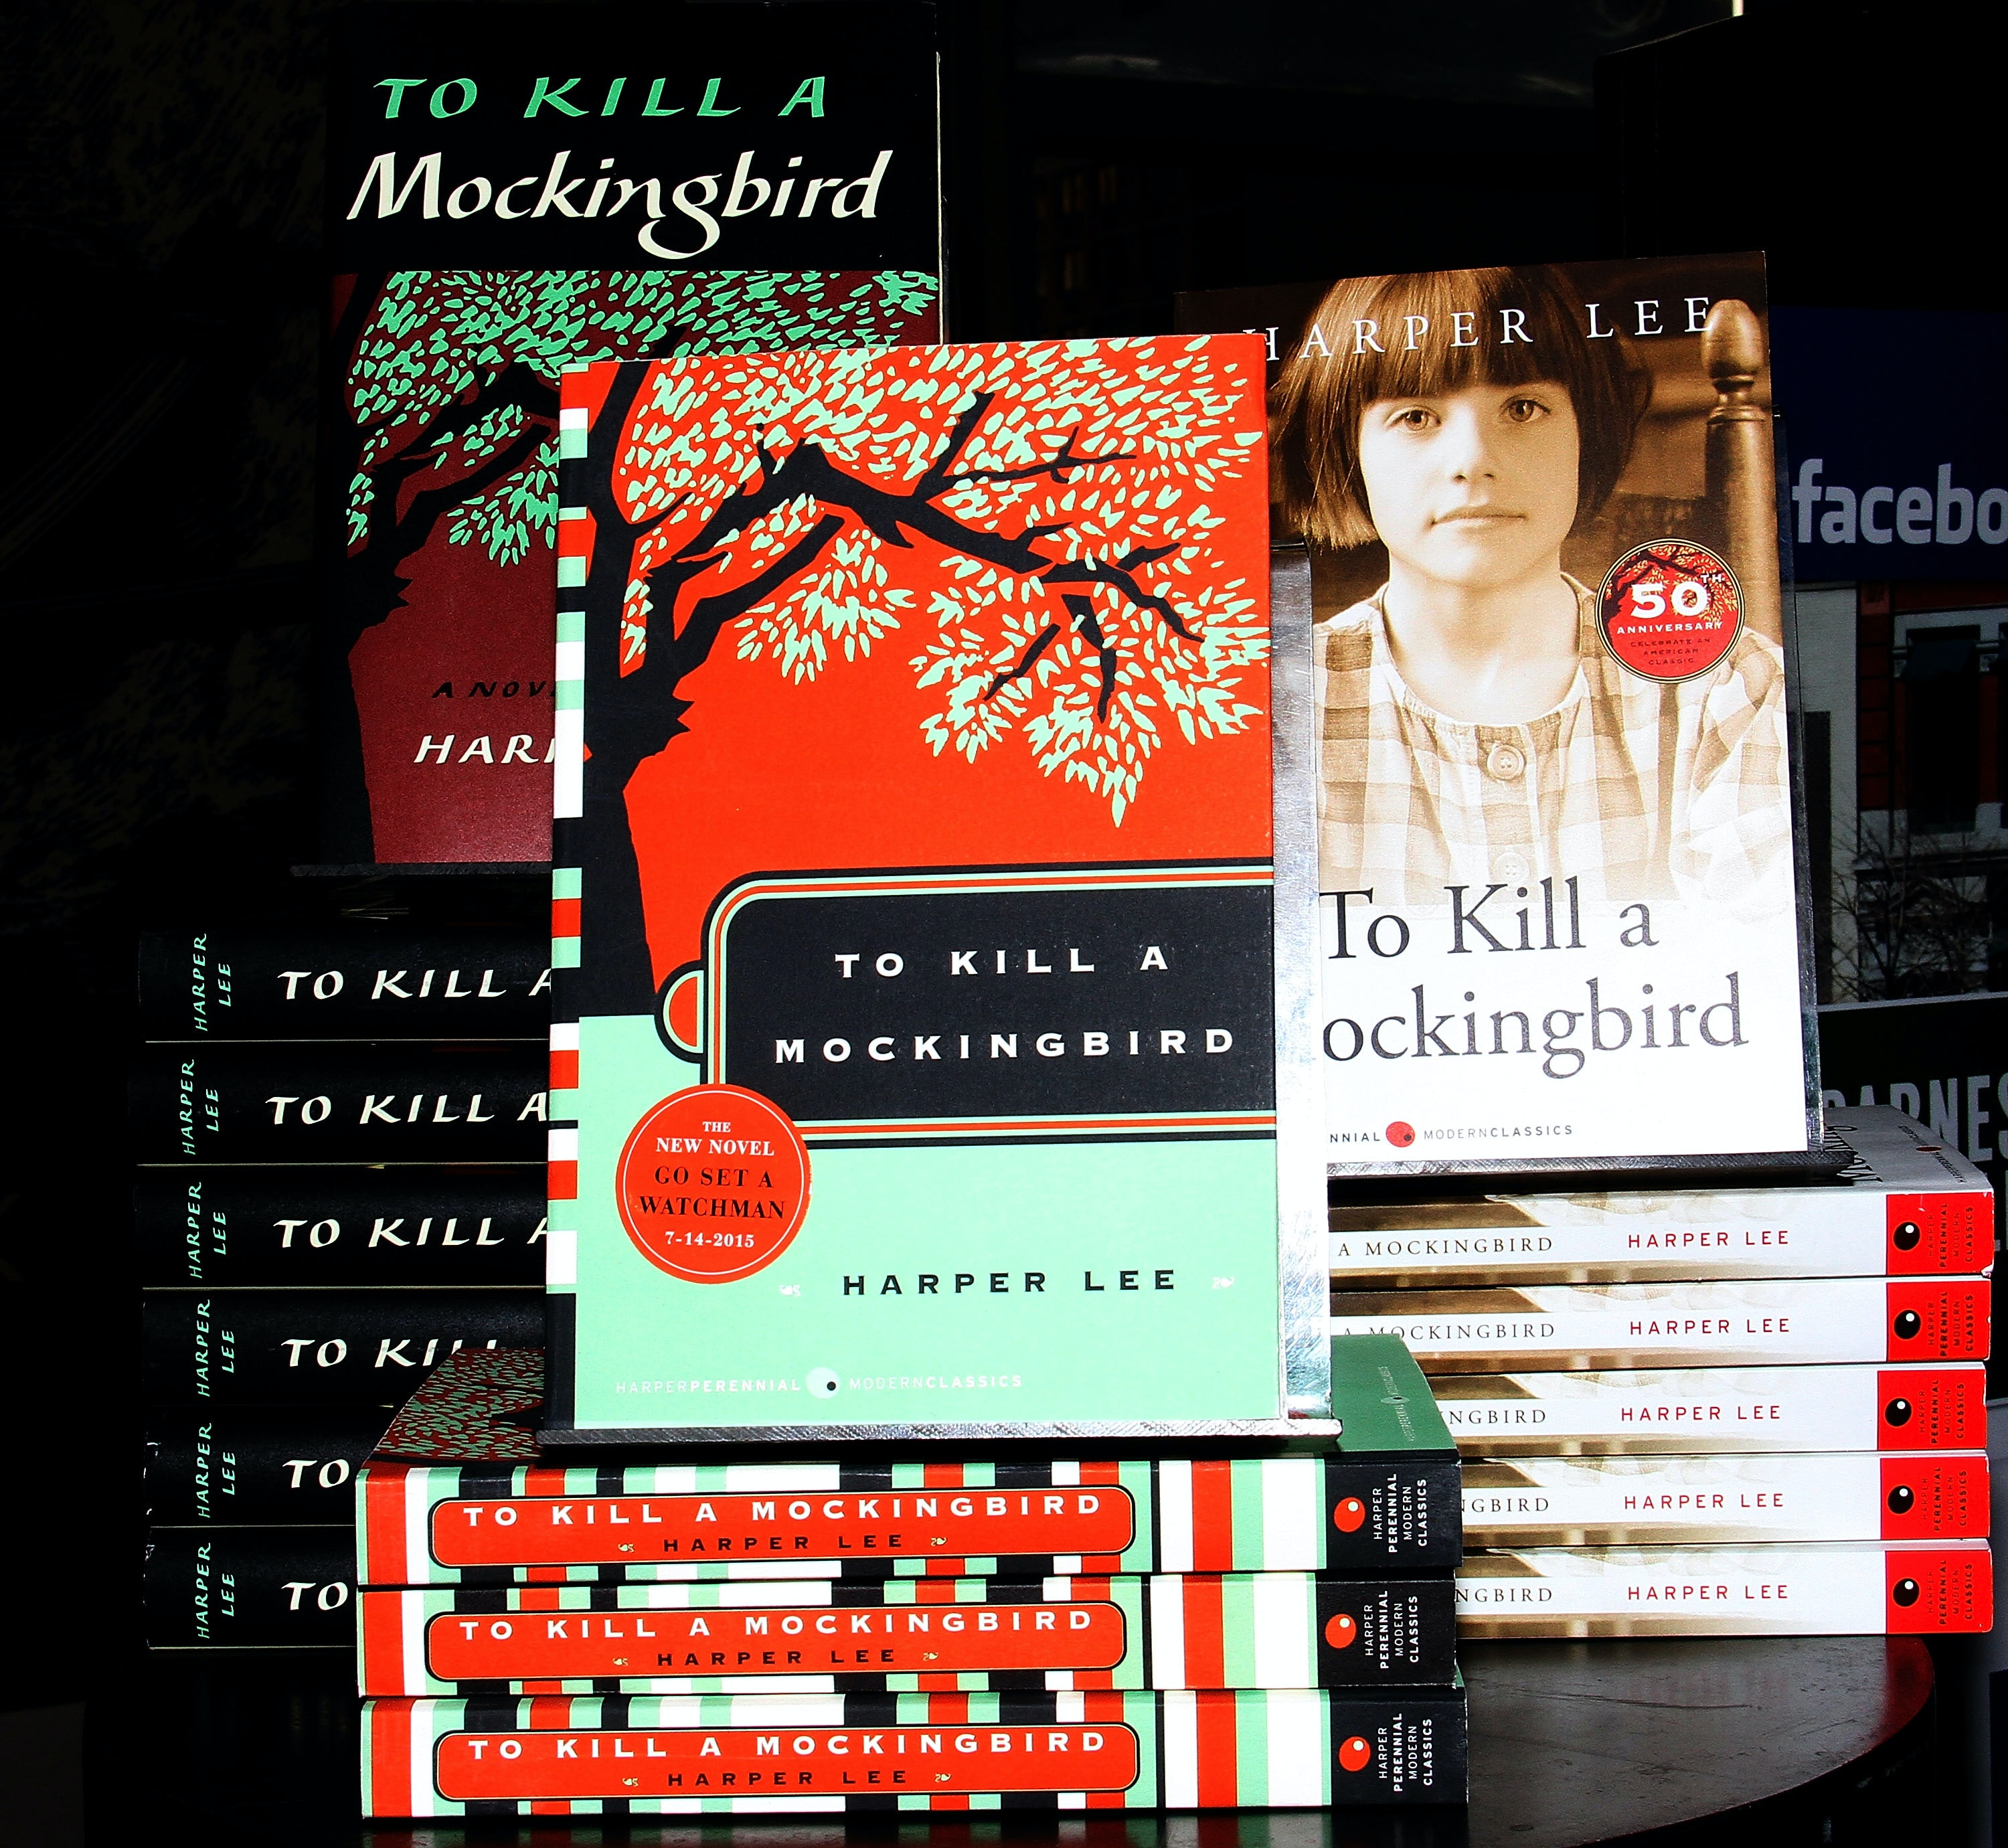 School district pulls 'To Kill A Mockingbird' because it 'makes people uncomfortable'